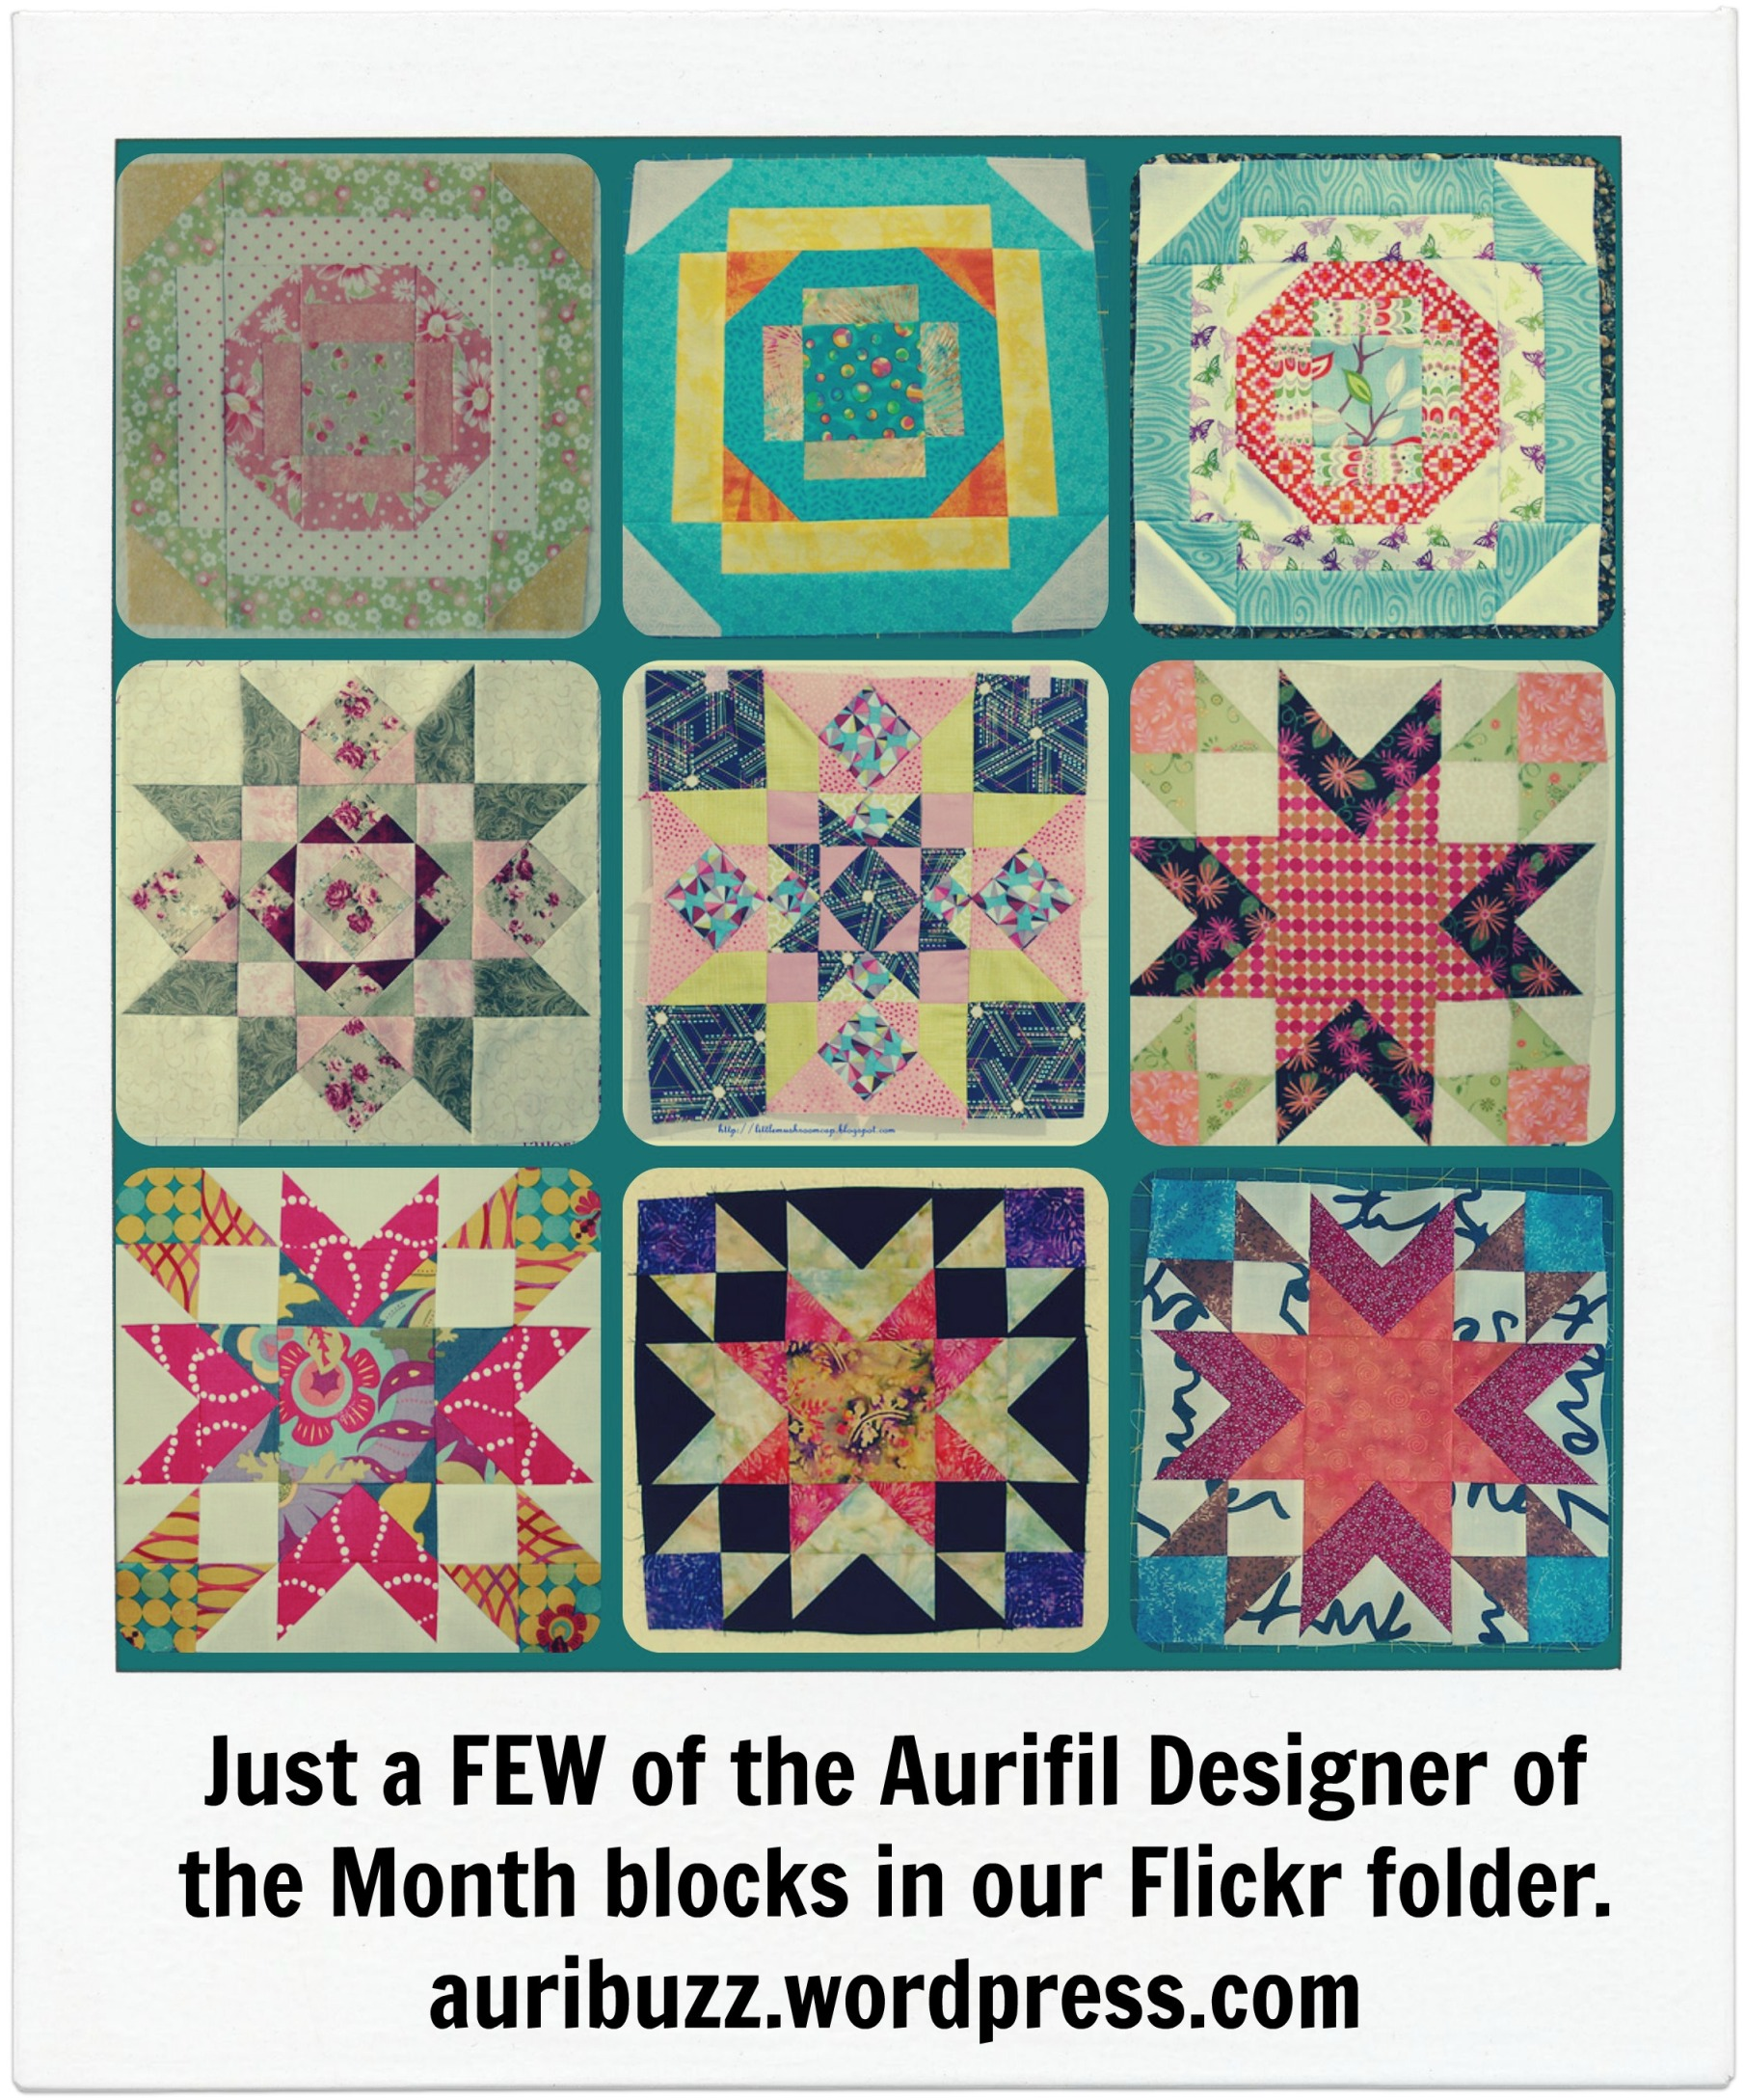 Are you Caught up on your Designer of the Month blocks?